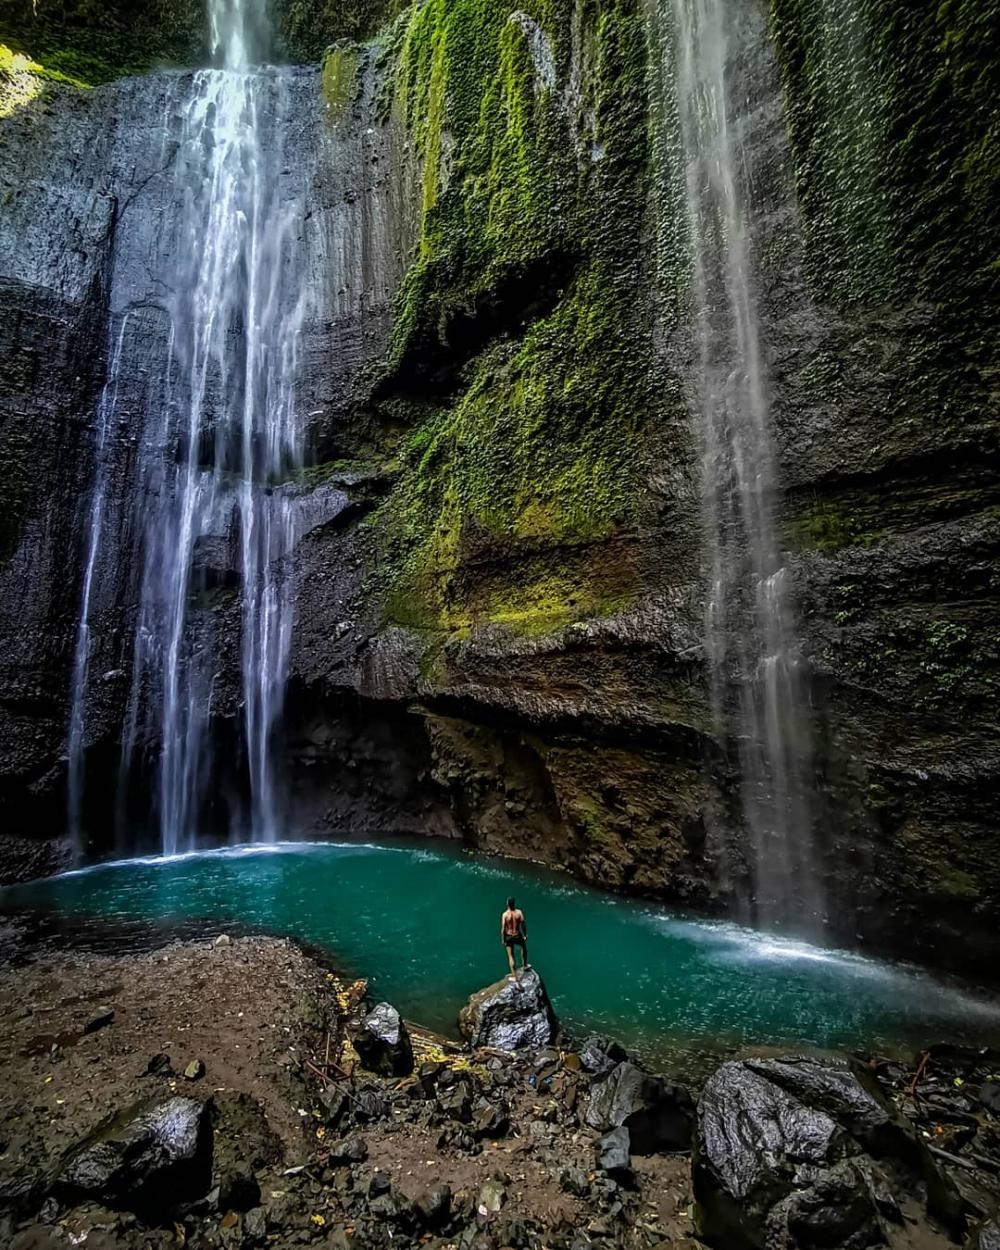 Madakaripura, The Enchanting Waterfall